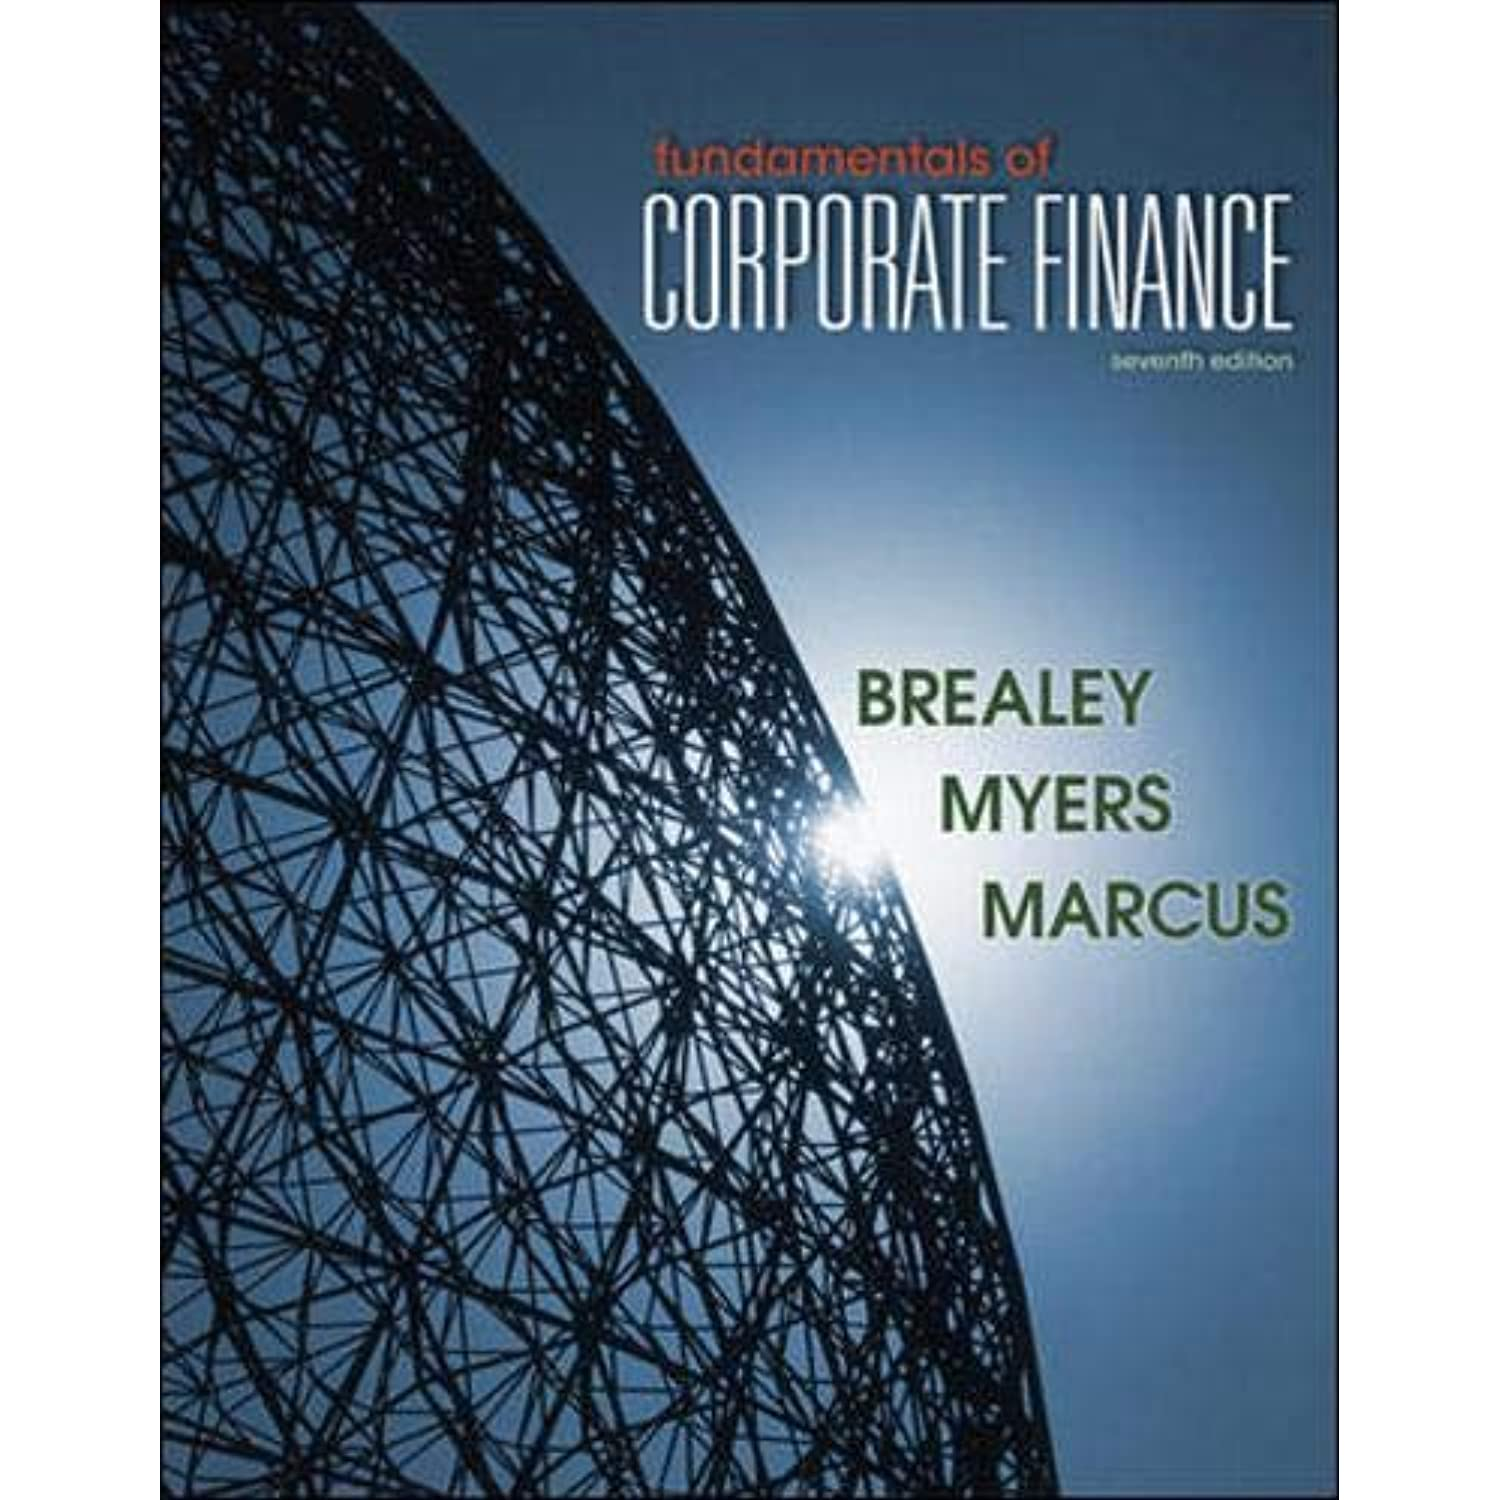 fundamentals of corporate finance 9th edition solutions the mba decision Principles of managerial finance gitman 14th edition solutions of financial management brigham houston 13th fundamentals of financial management brigham.